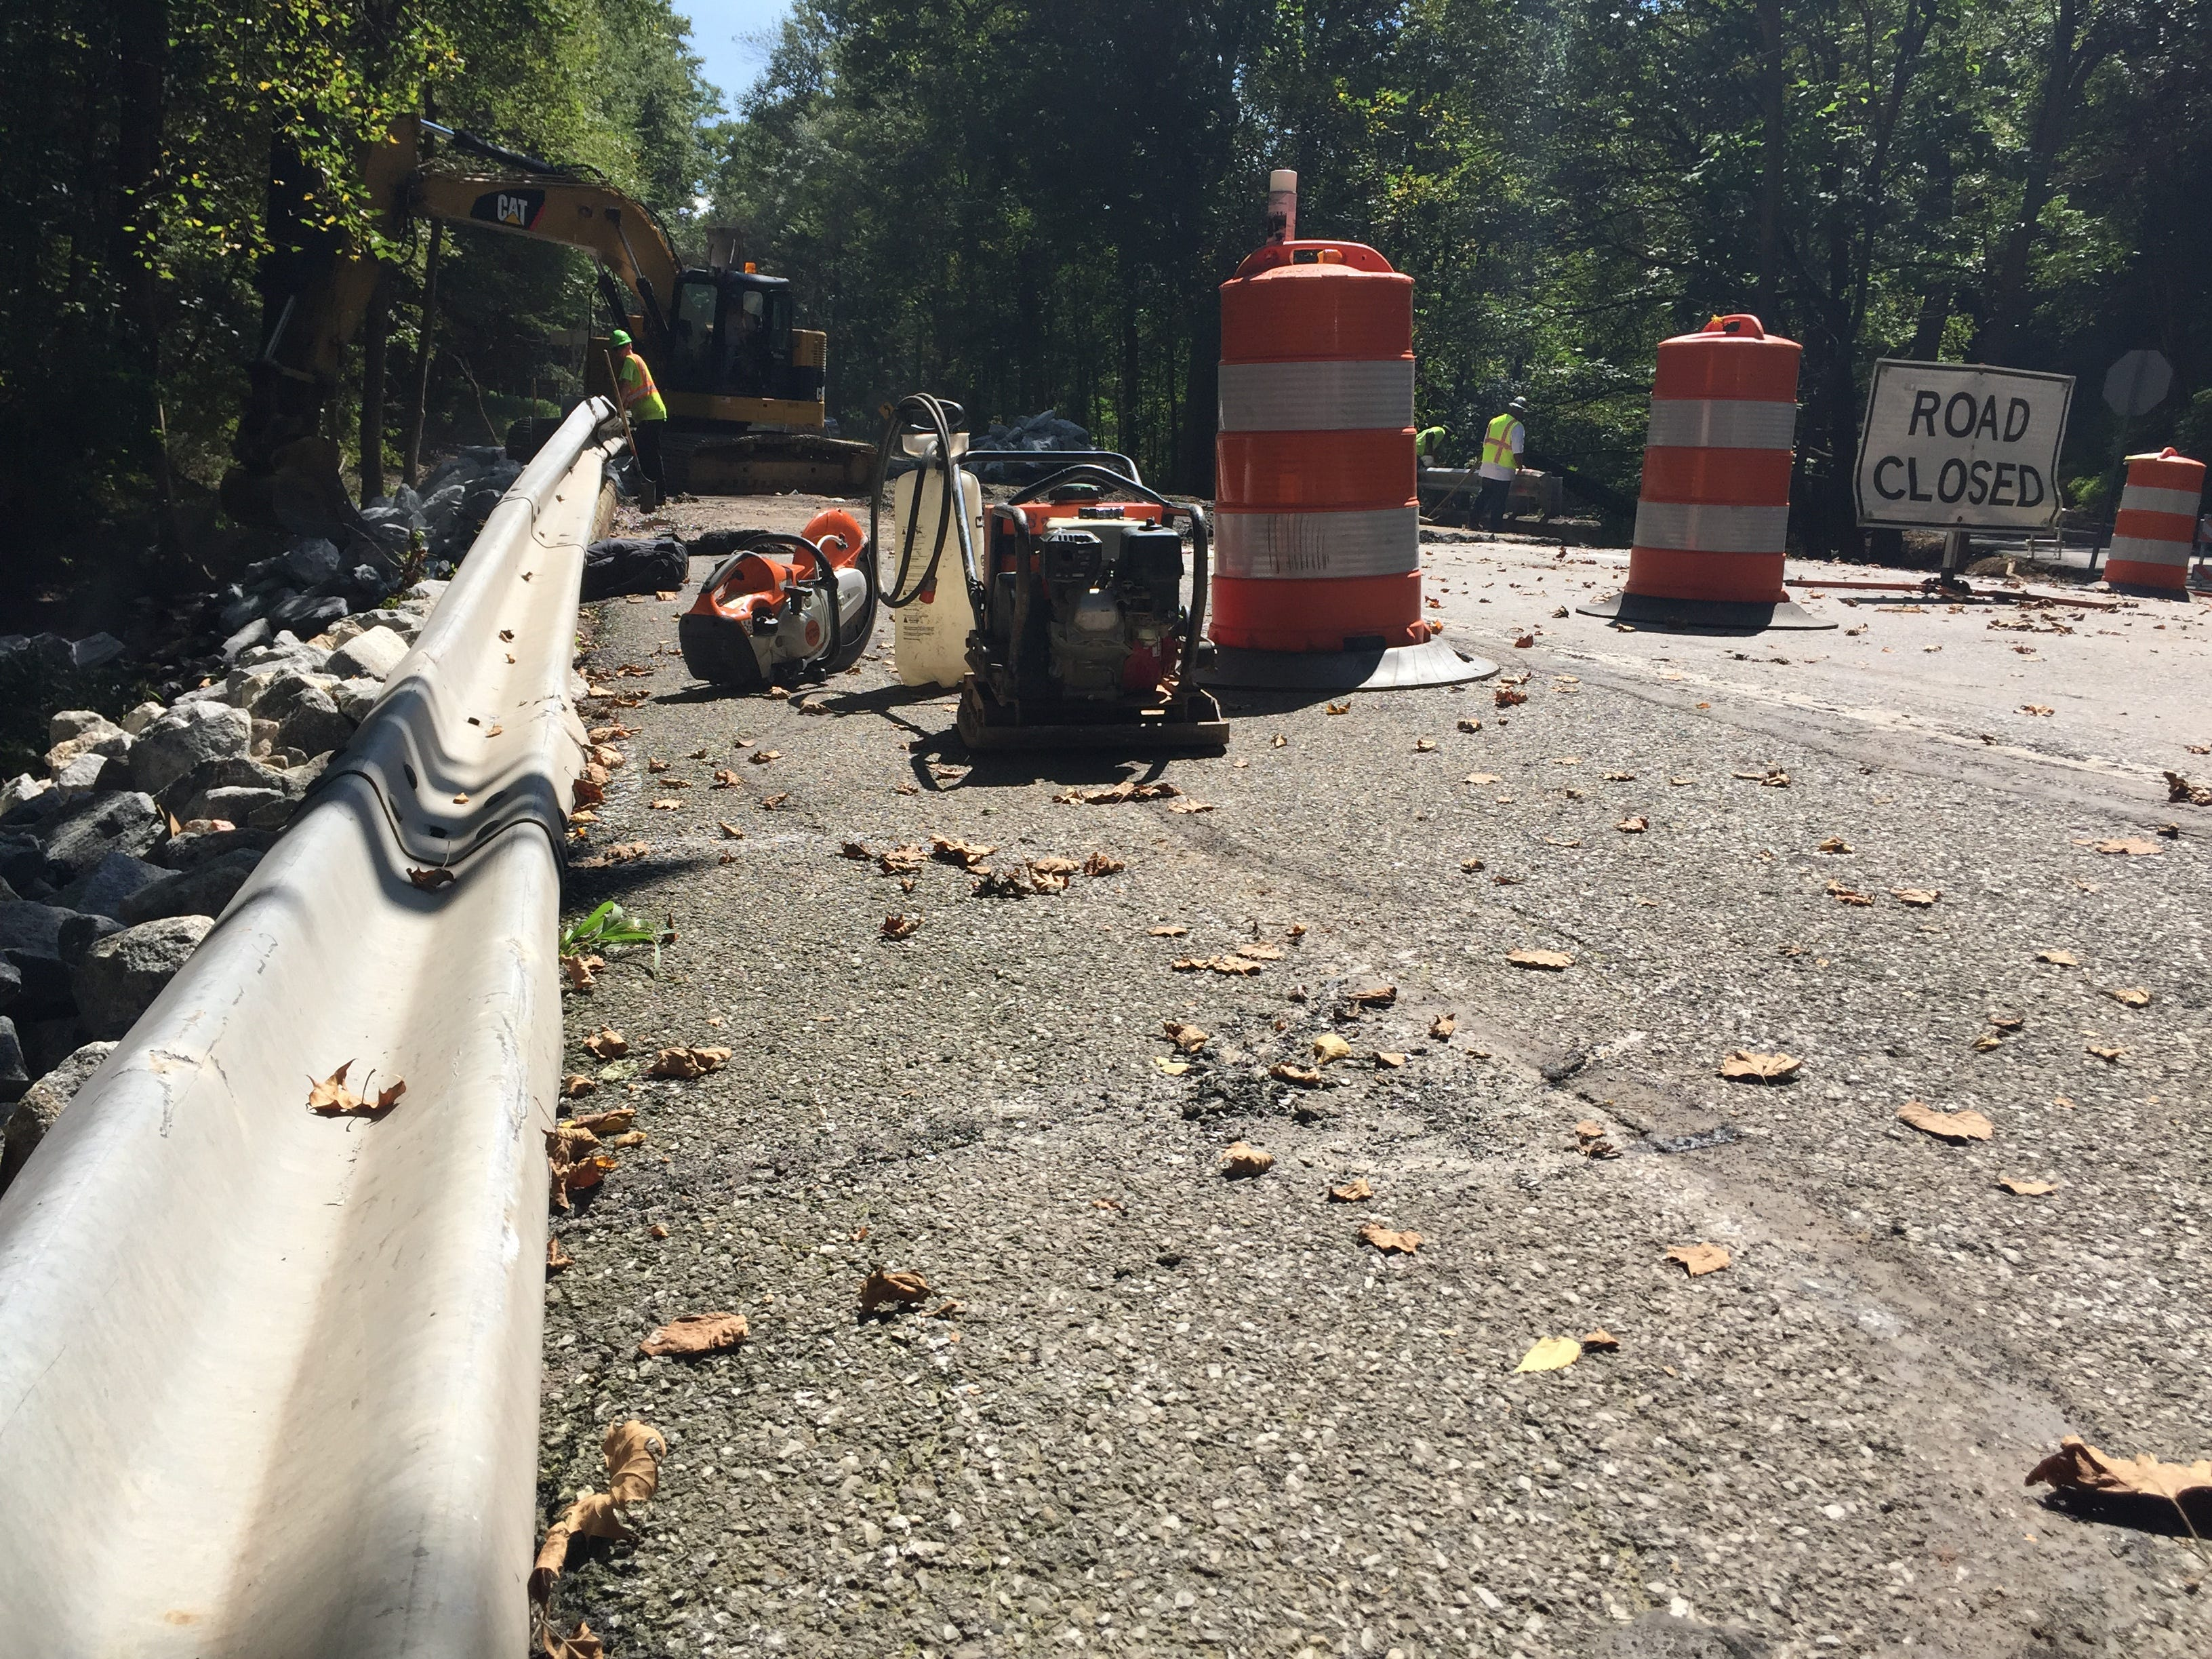 Crews contracted by PennDOT working on the bridge over Hammer Creek on Route 322 in Elizabeth Township, Lancaster County Sept. 4, 2018. The bridge was washed out by floodwaters Aug. 31 causing Route 322 to be closed in Lebanon County at Boyd Street in Cornwall Borough. The roadway is expected to be opened by Sept. 14.